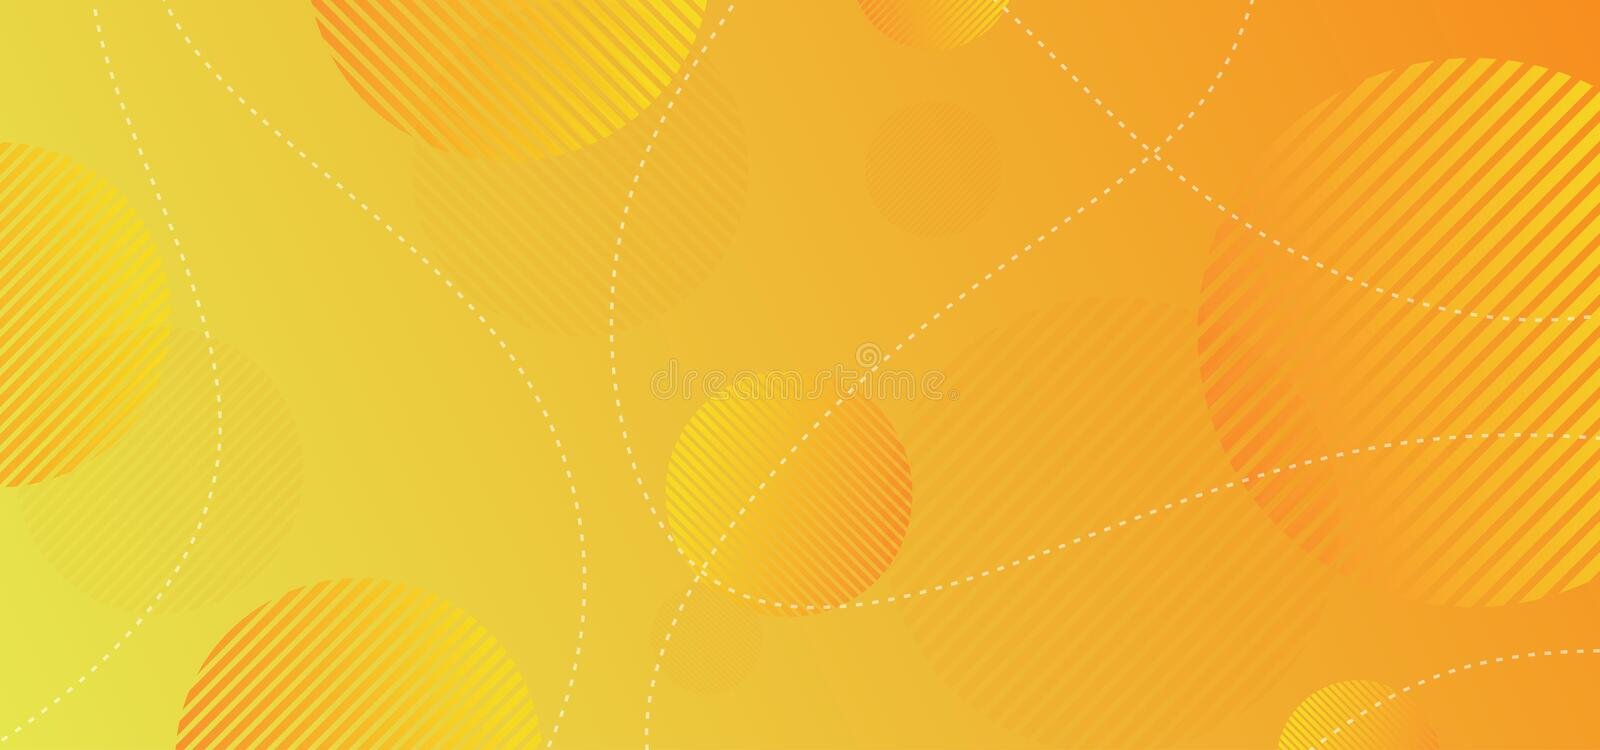 Dynamic circle geometric background with orange and yellow gradient. Modern, banner, pattern, brochure, flyer, frame, poster, business, abstract, cover, card vector illustration